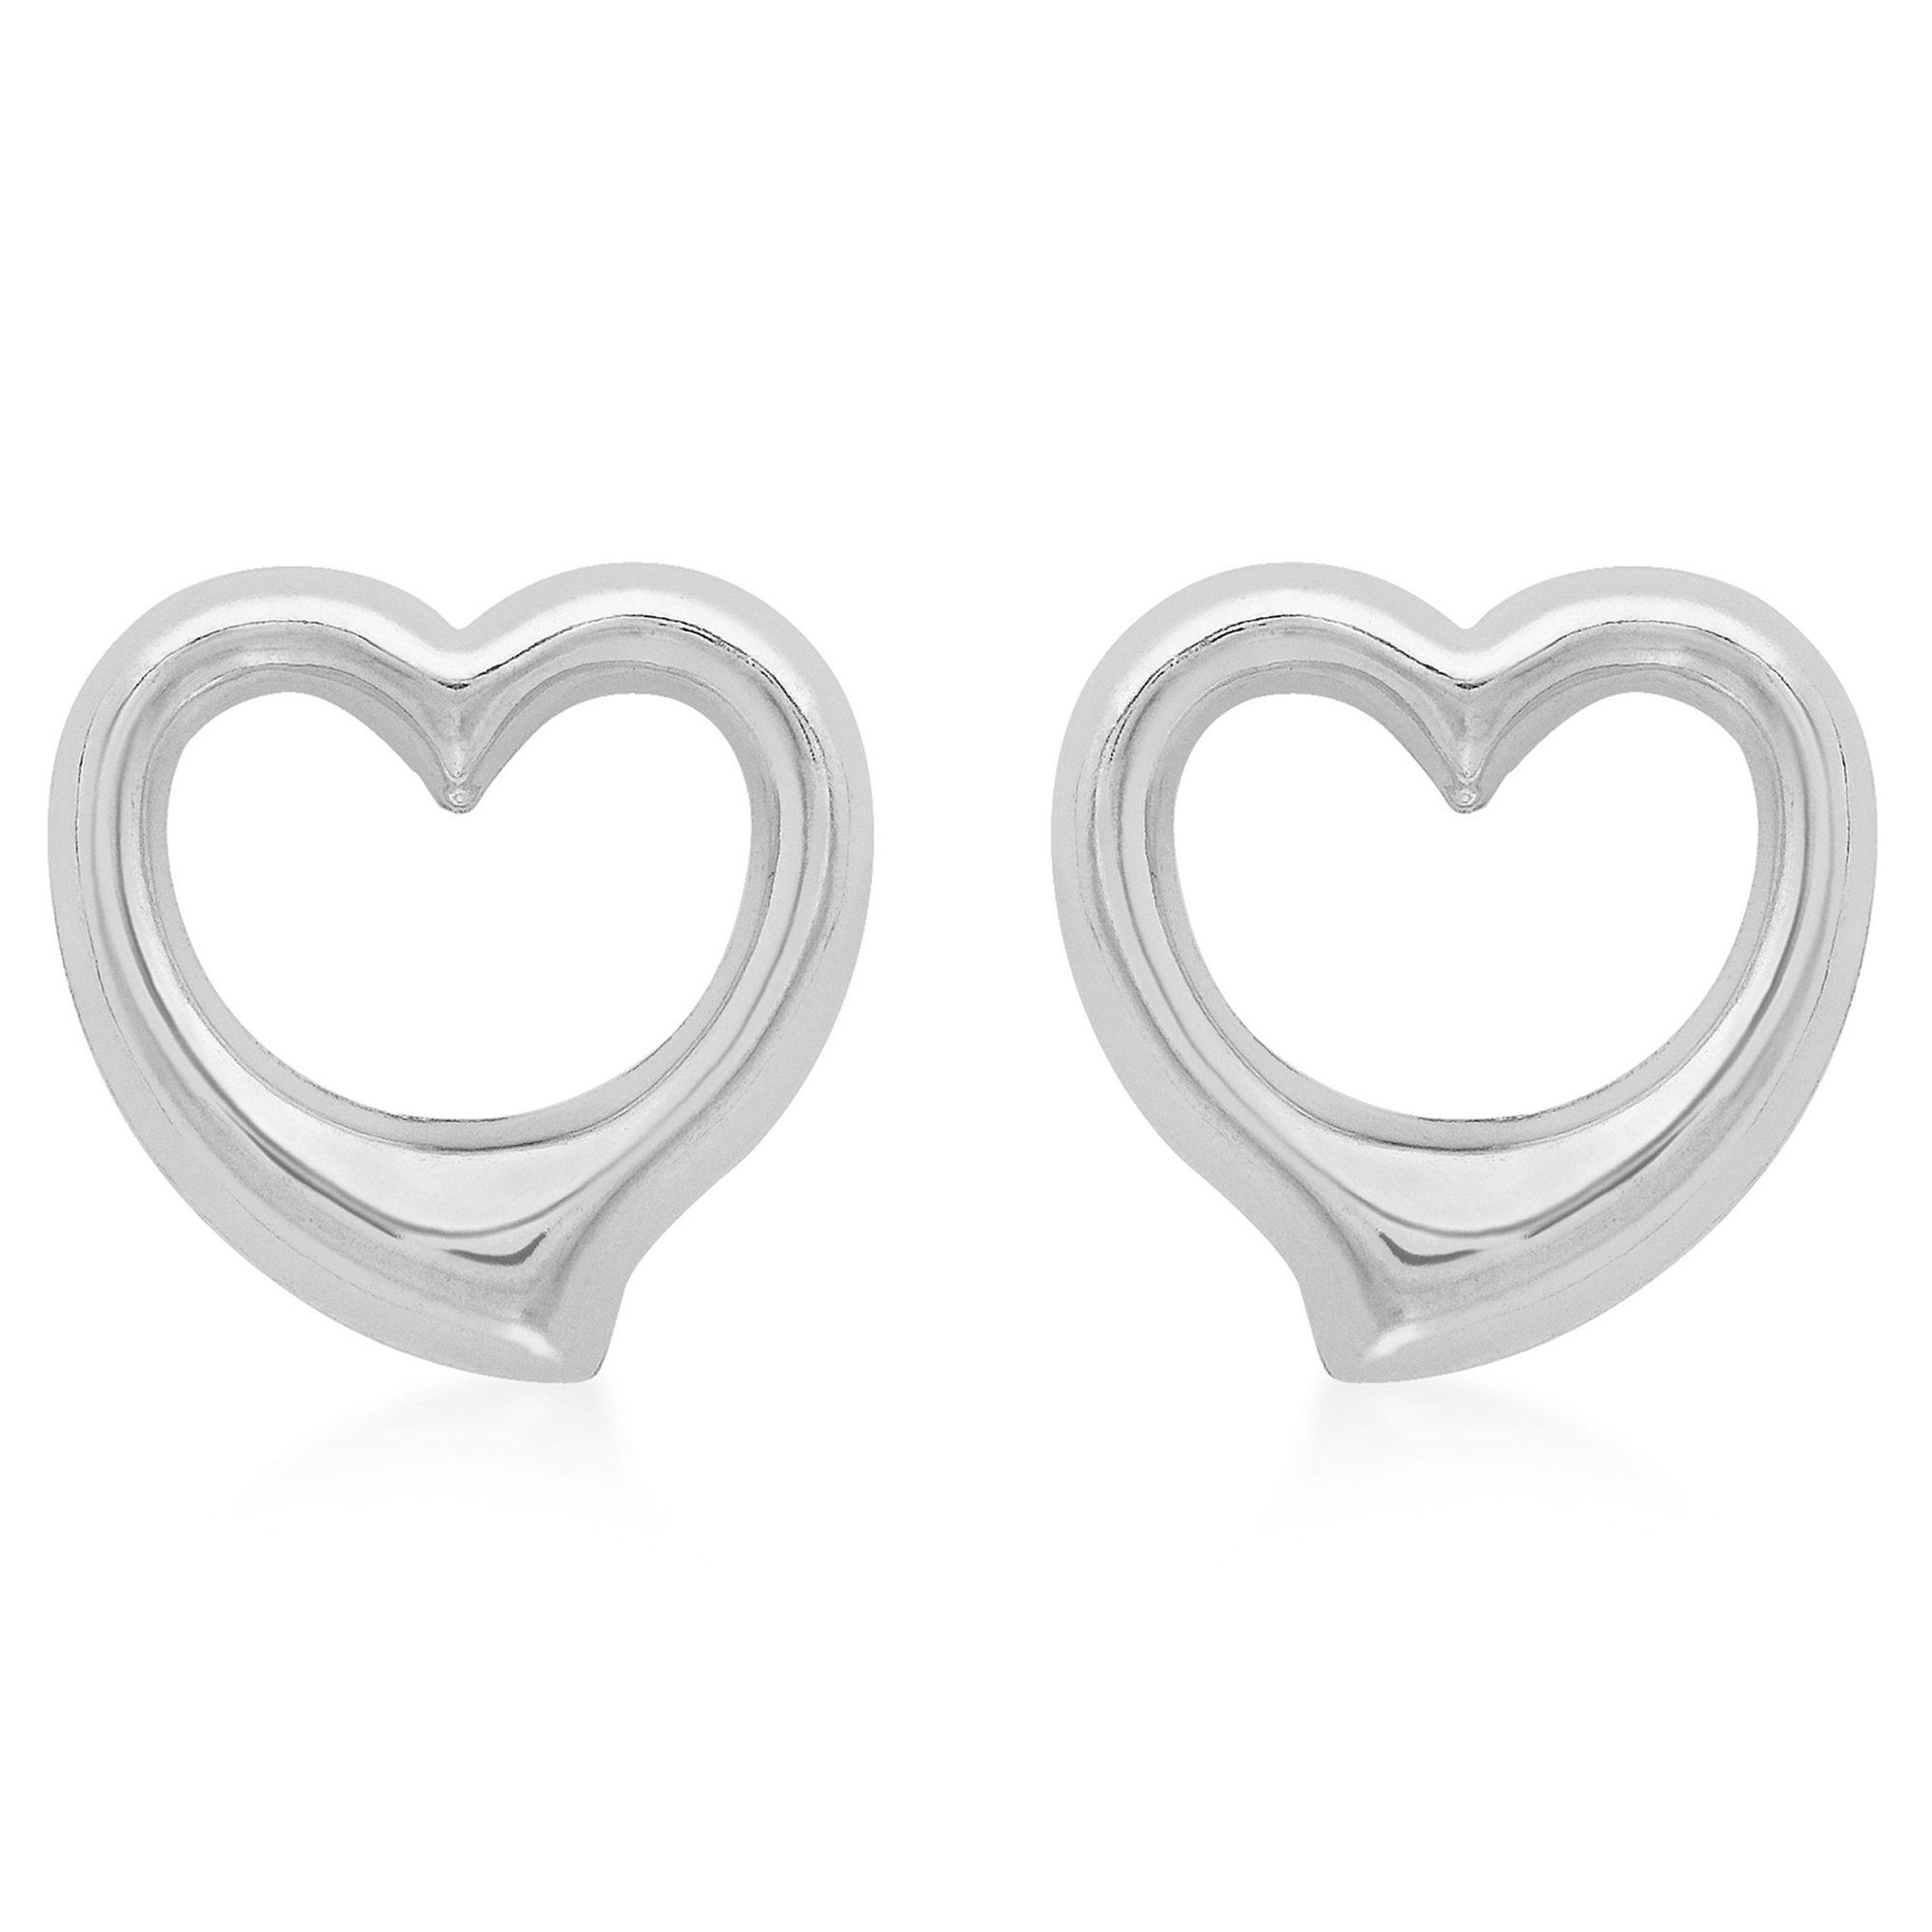 Ib&b 9ct White Gold Heart Necklace And Stud Earrings Set in Metallic